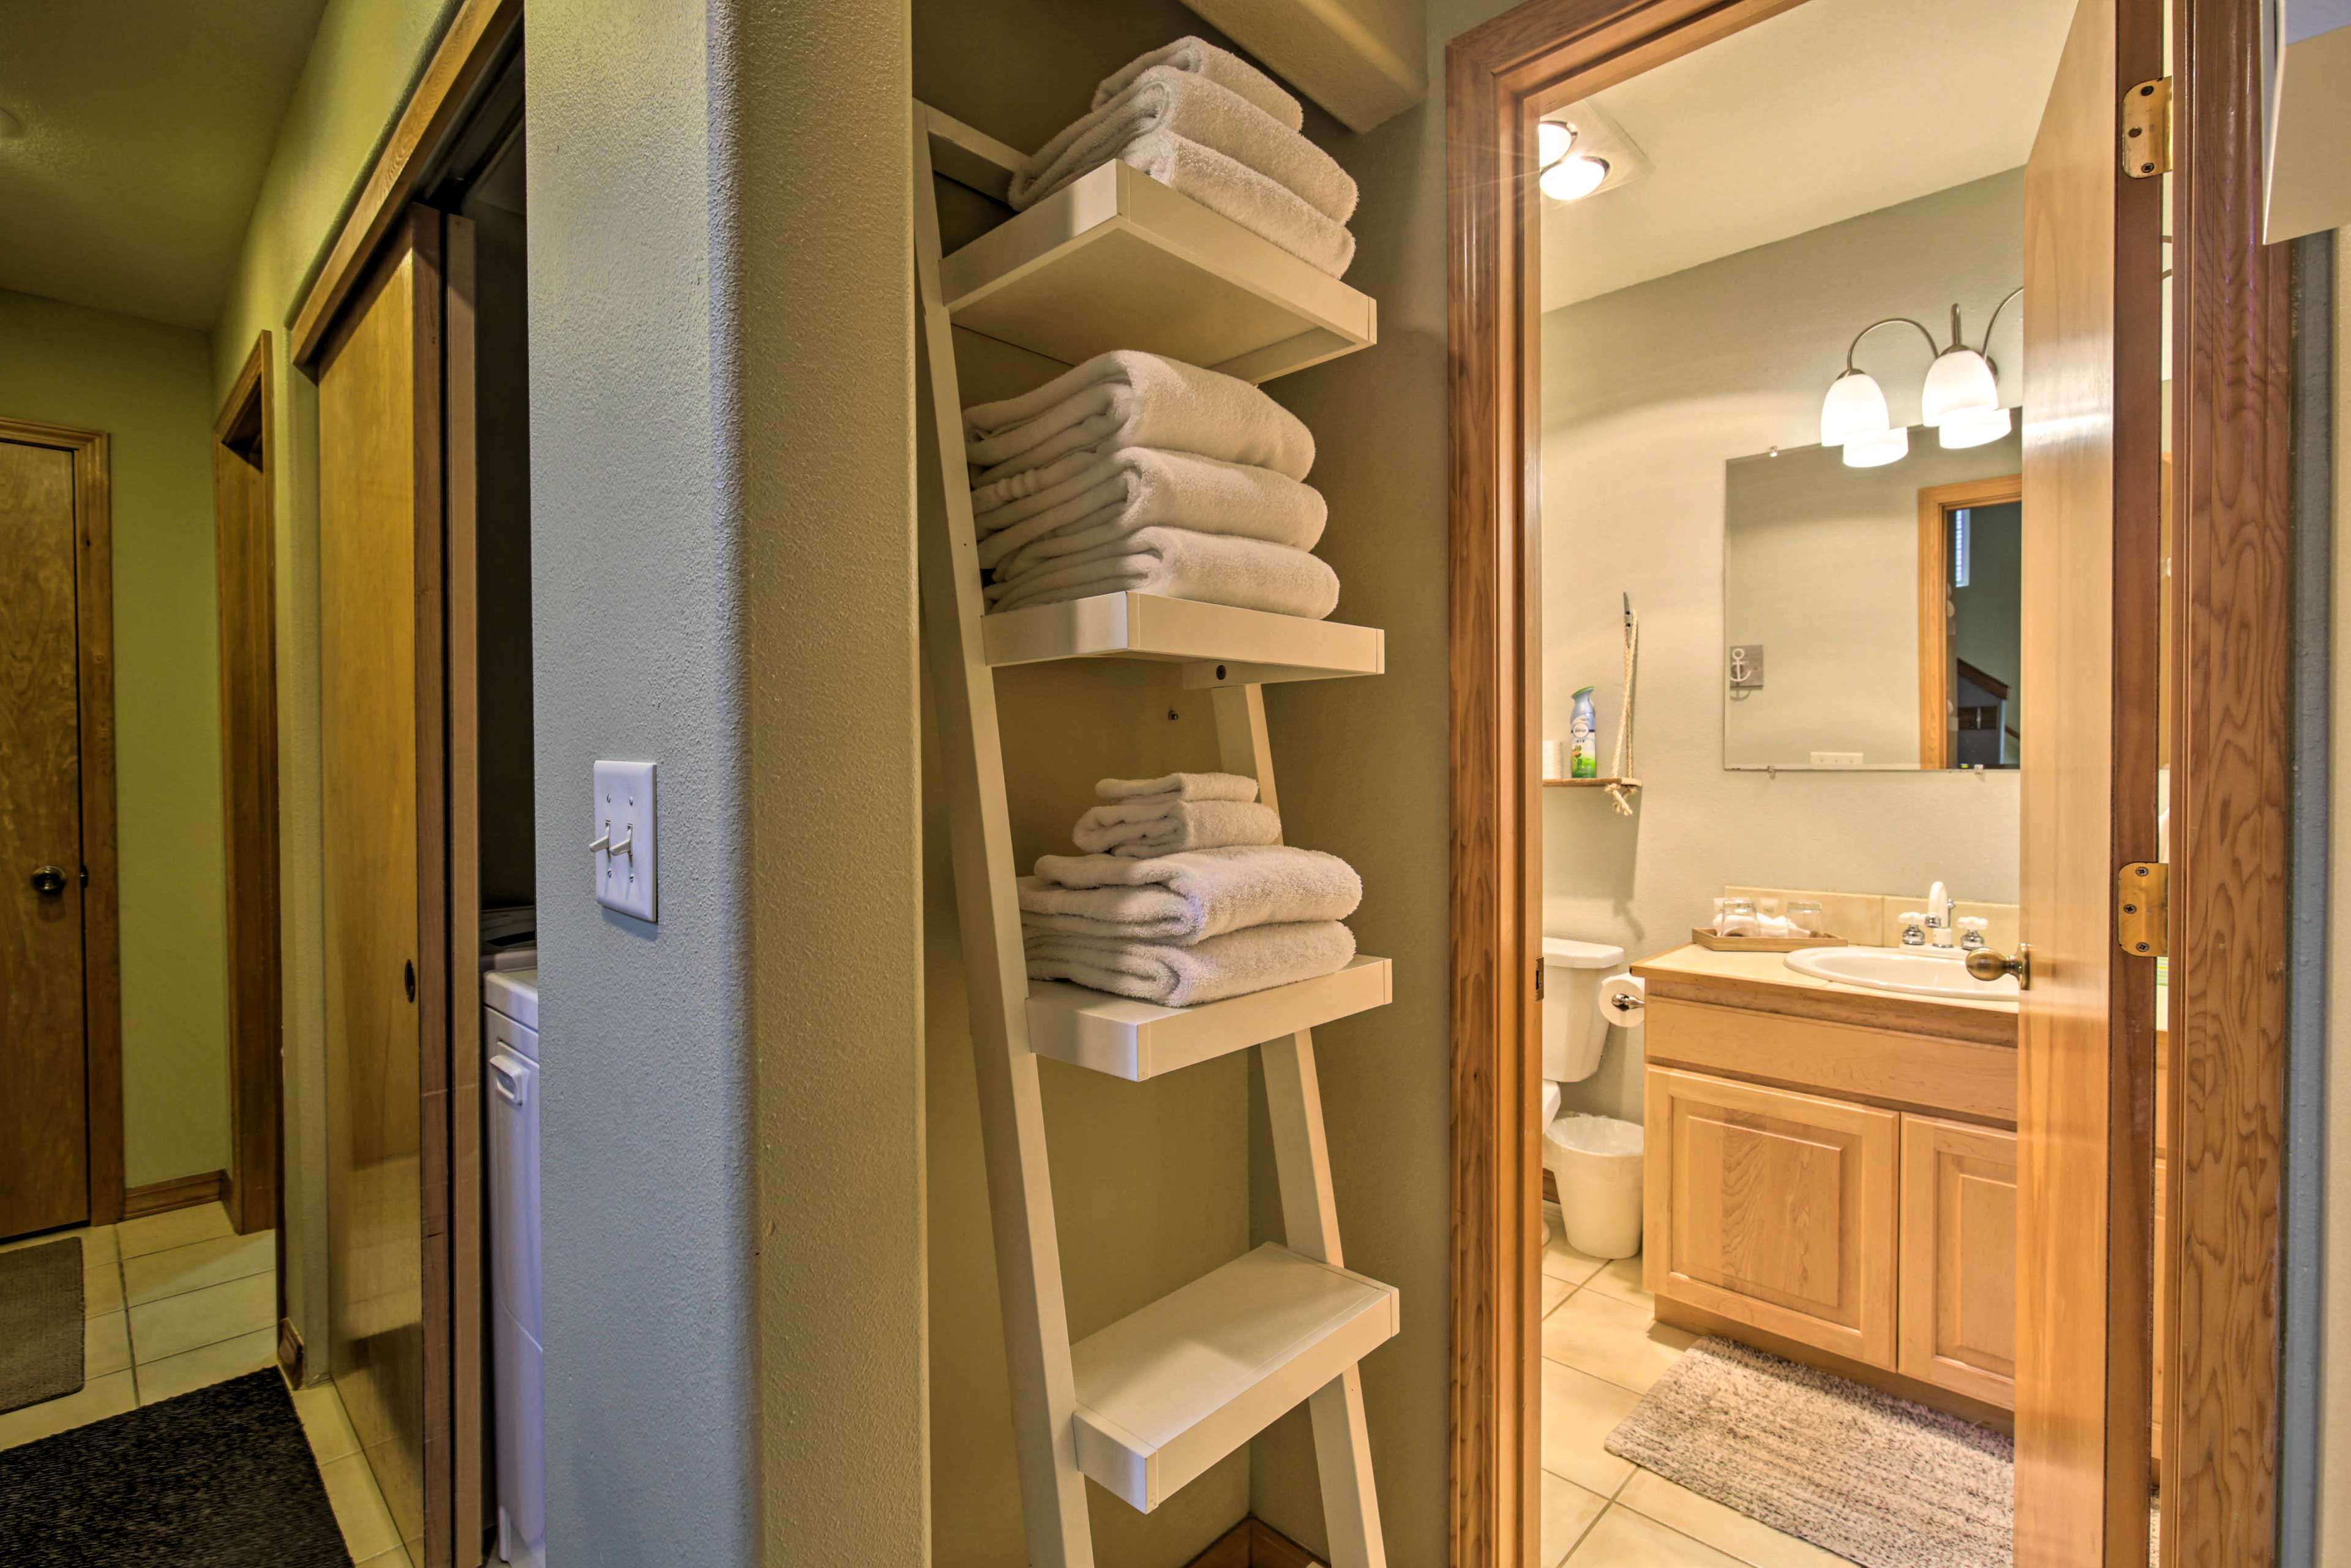 Make the most out of the complimentary towels and toiletries.